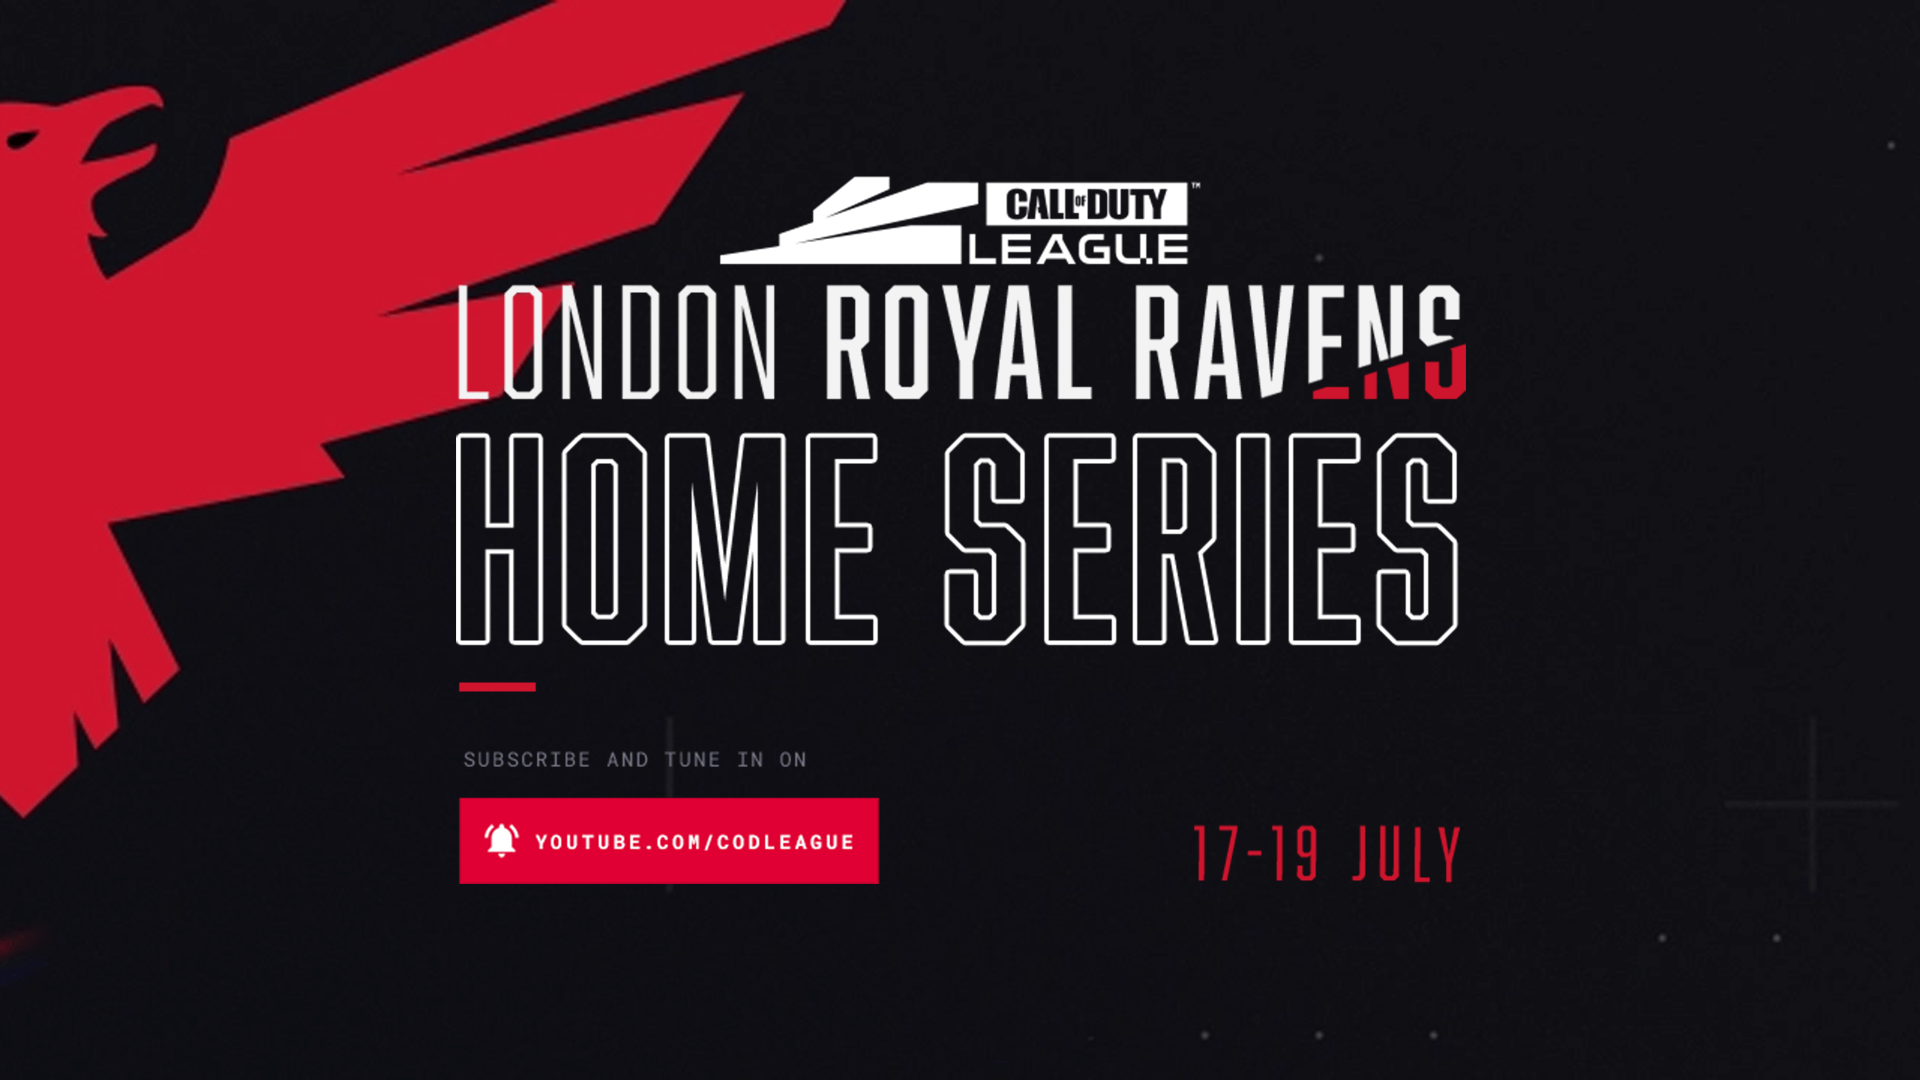 CDL Week 12 – London Royal Ravens Home Series